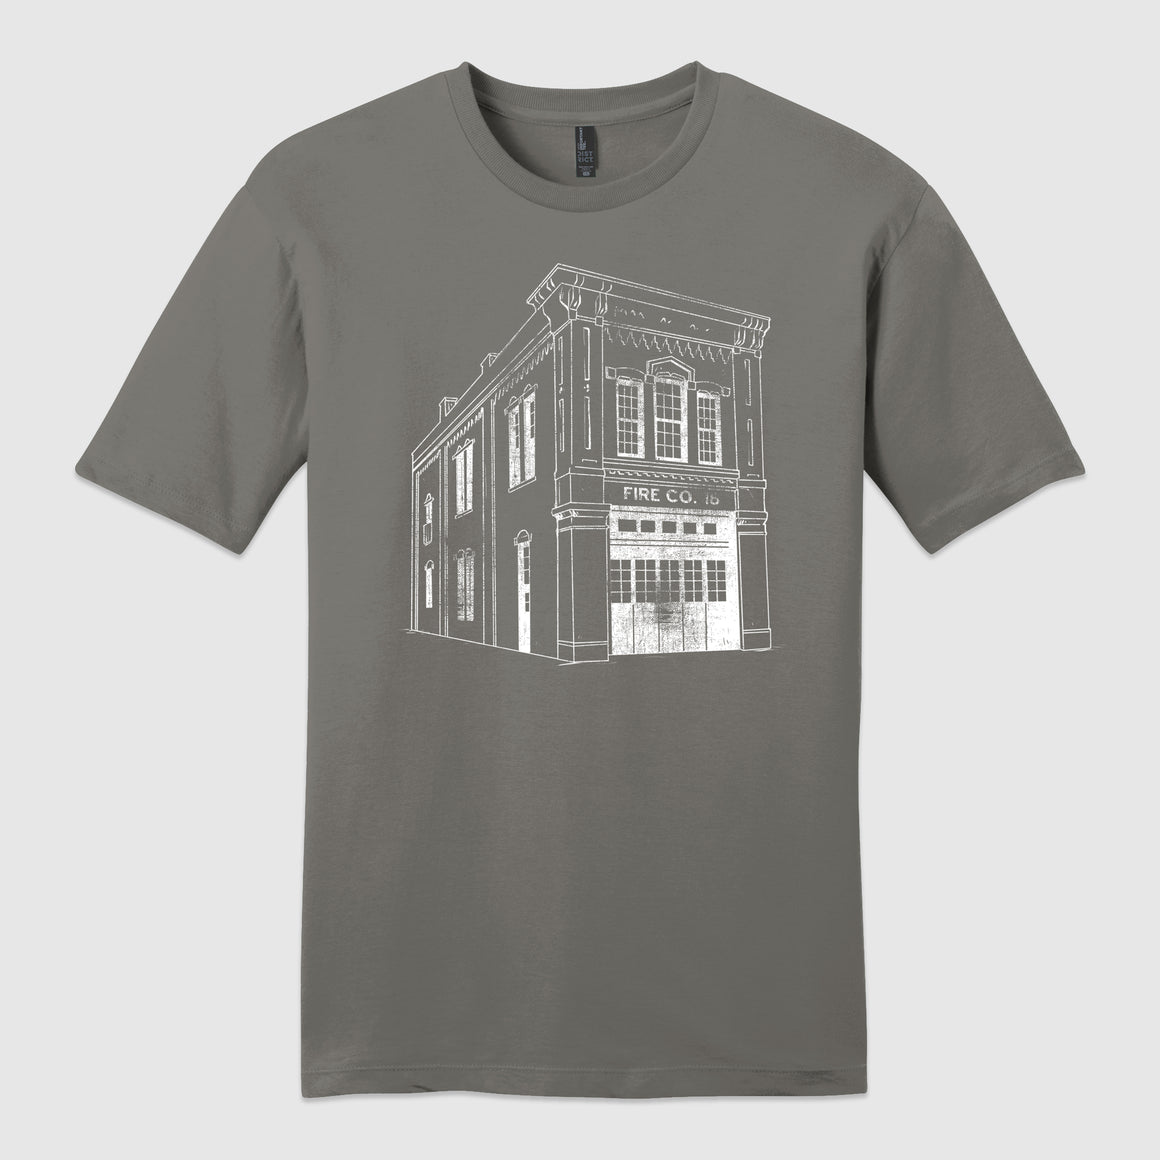 Fireside Pizza building T-shirt